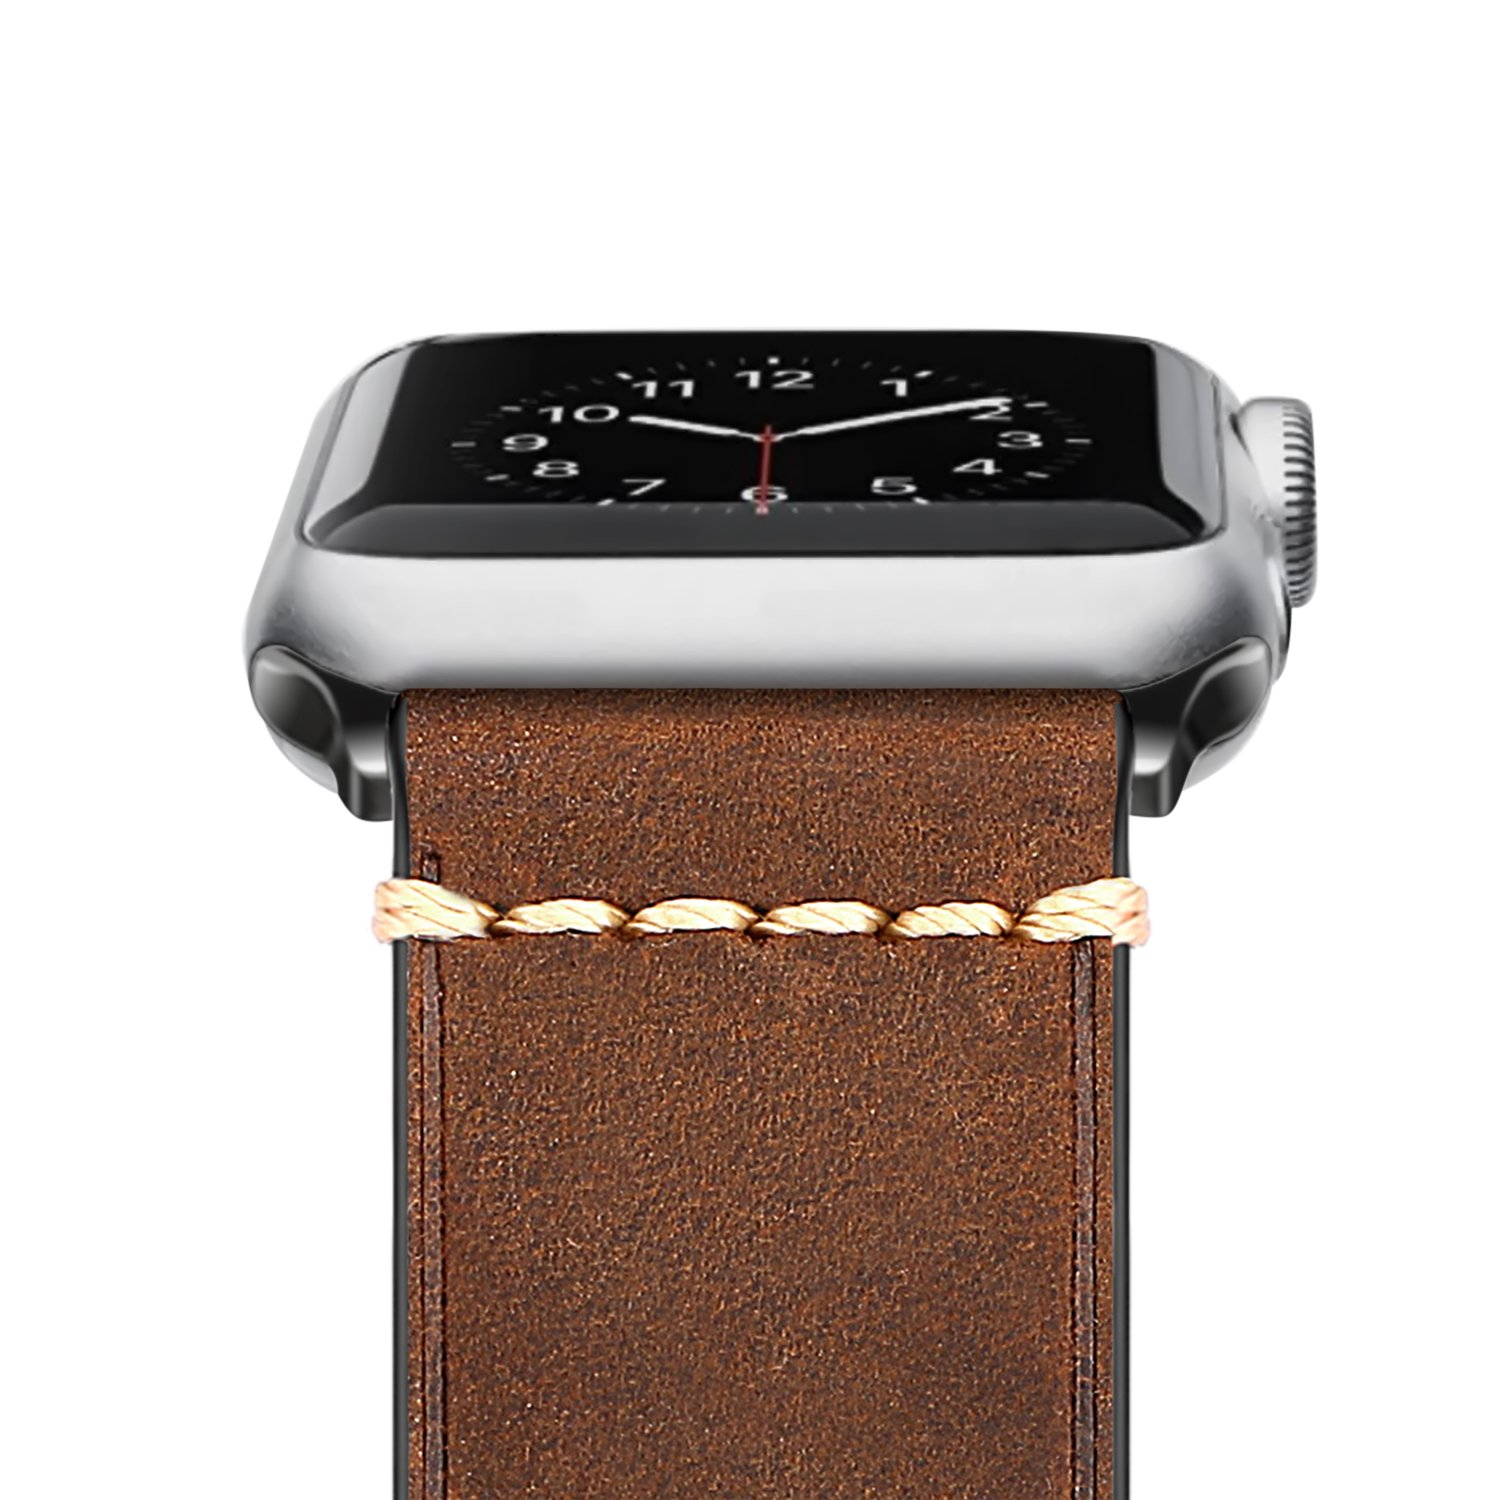 Genuine Leather Watch Strap Band For Apple 42mm Series 3 Fossil Es3954 Tailor Multifunction Light Brown 2 1